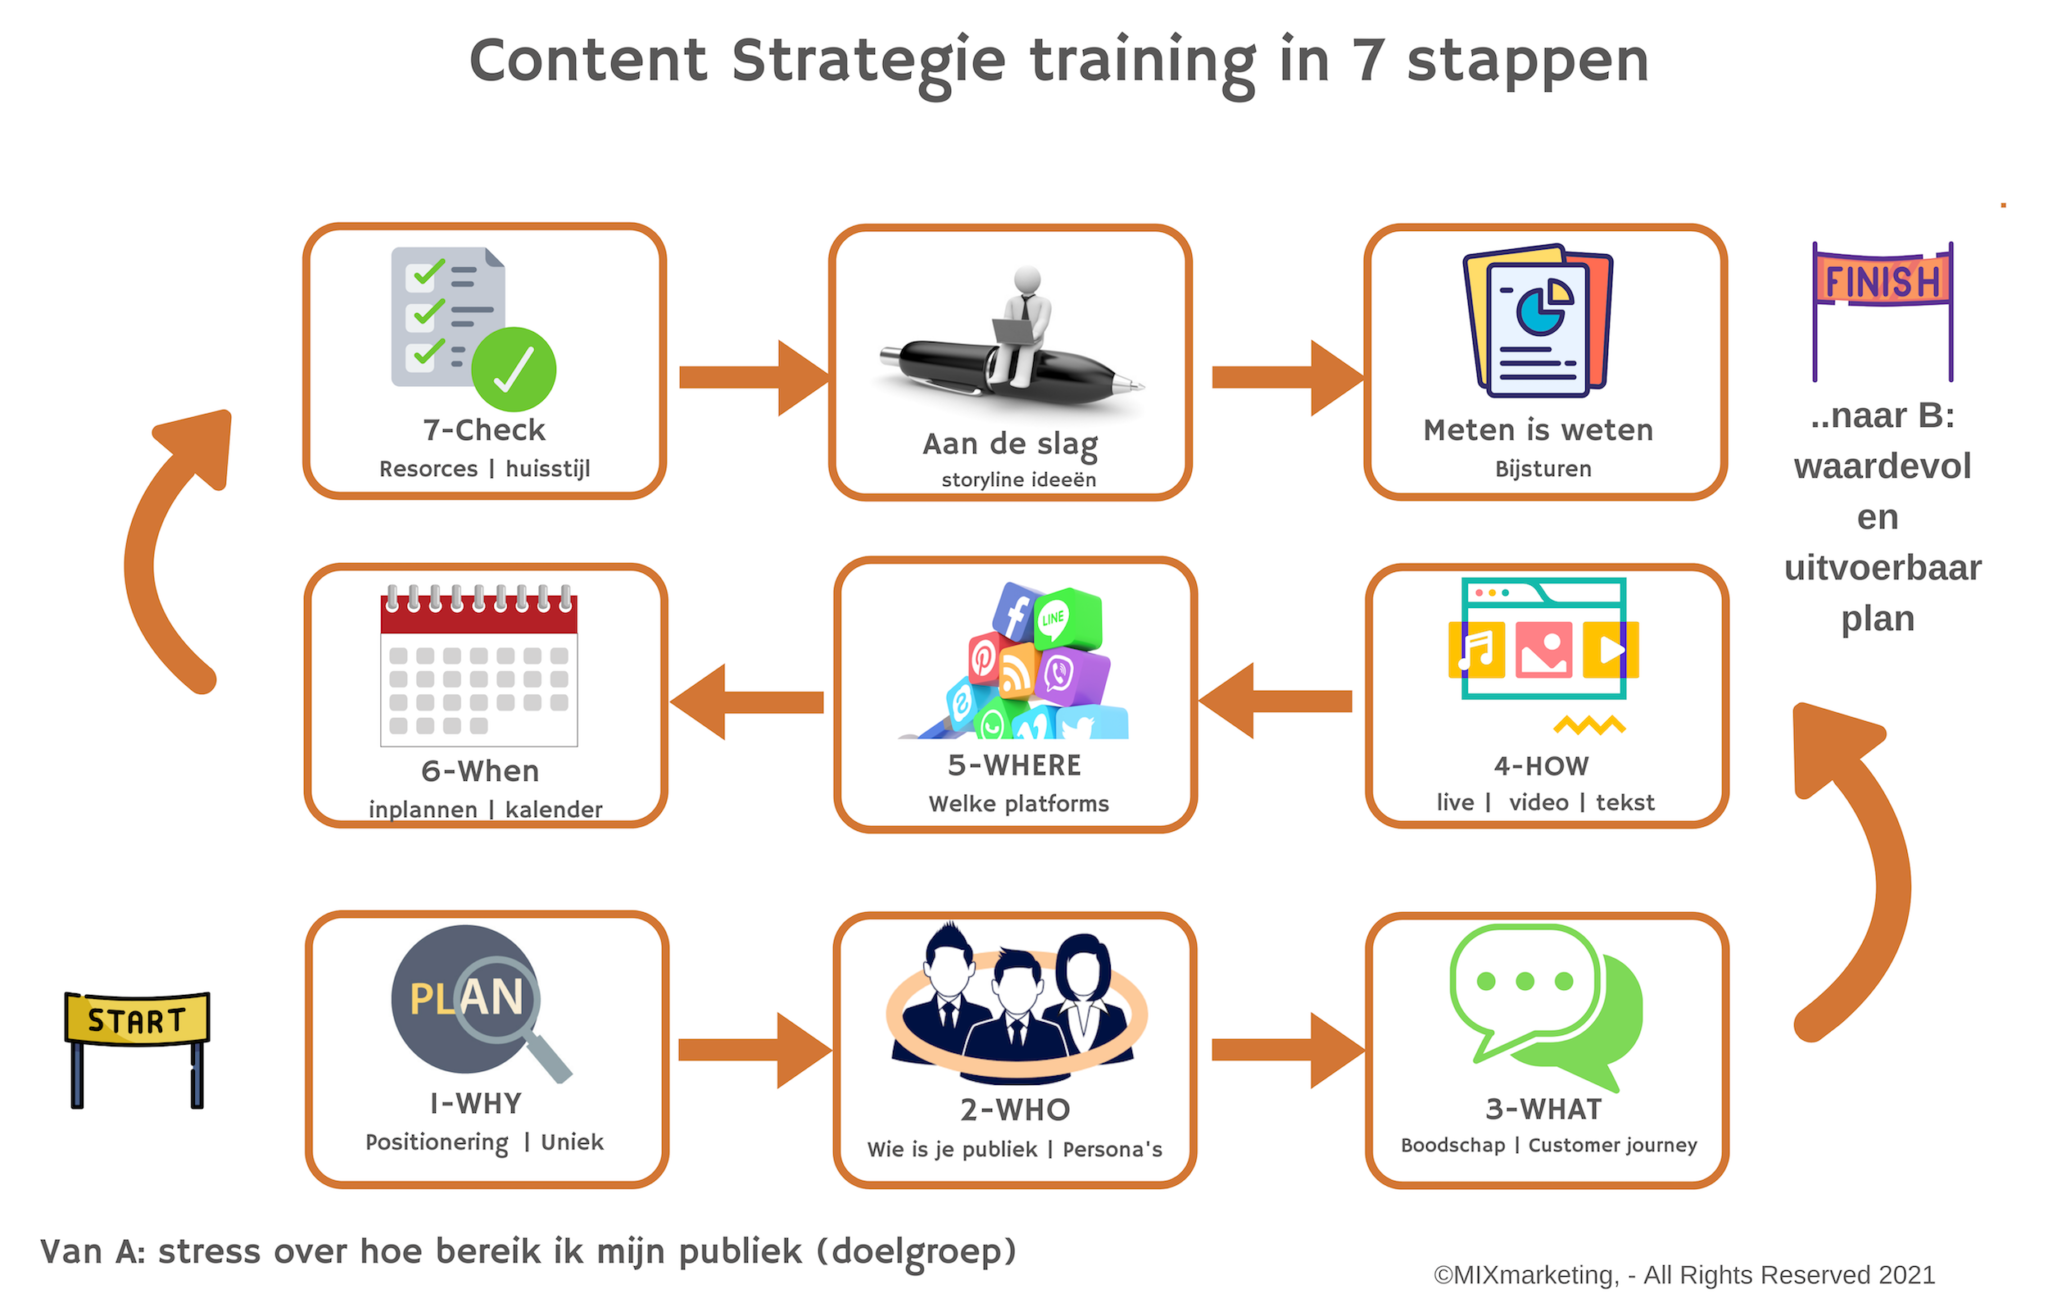 Content strategie in 7 stappen - training